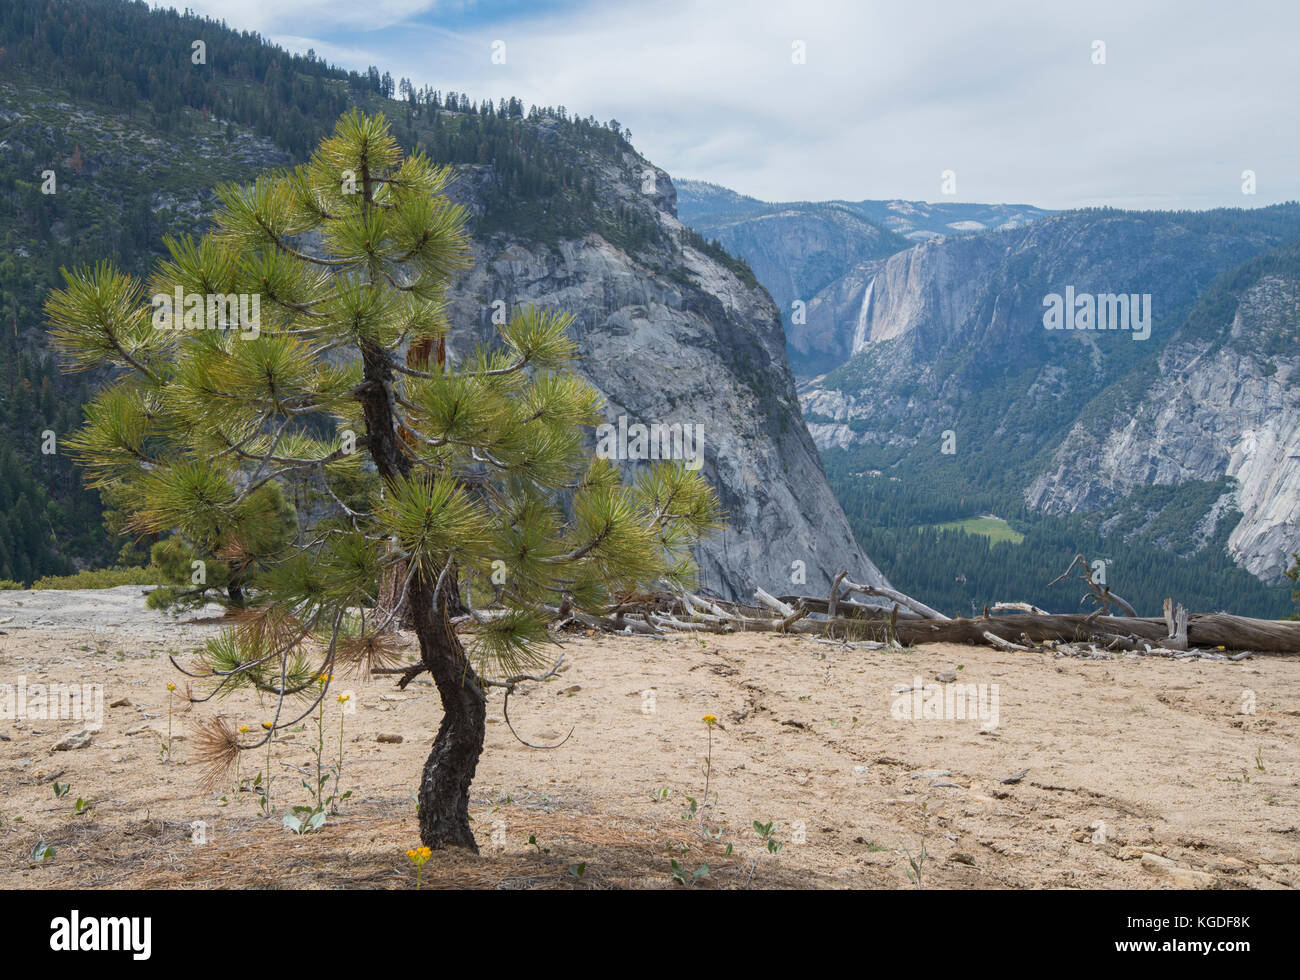 A tree overlooks Yosemite Valley from the John Muir Trail. - Stock Image